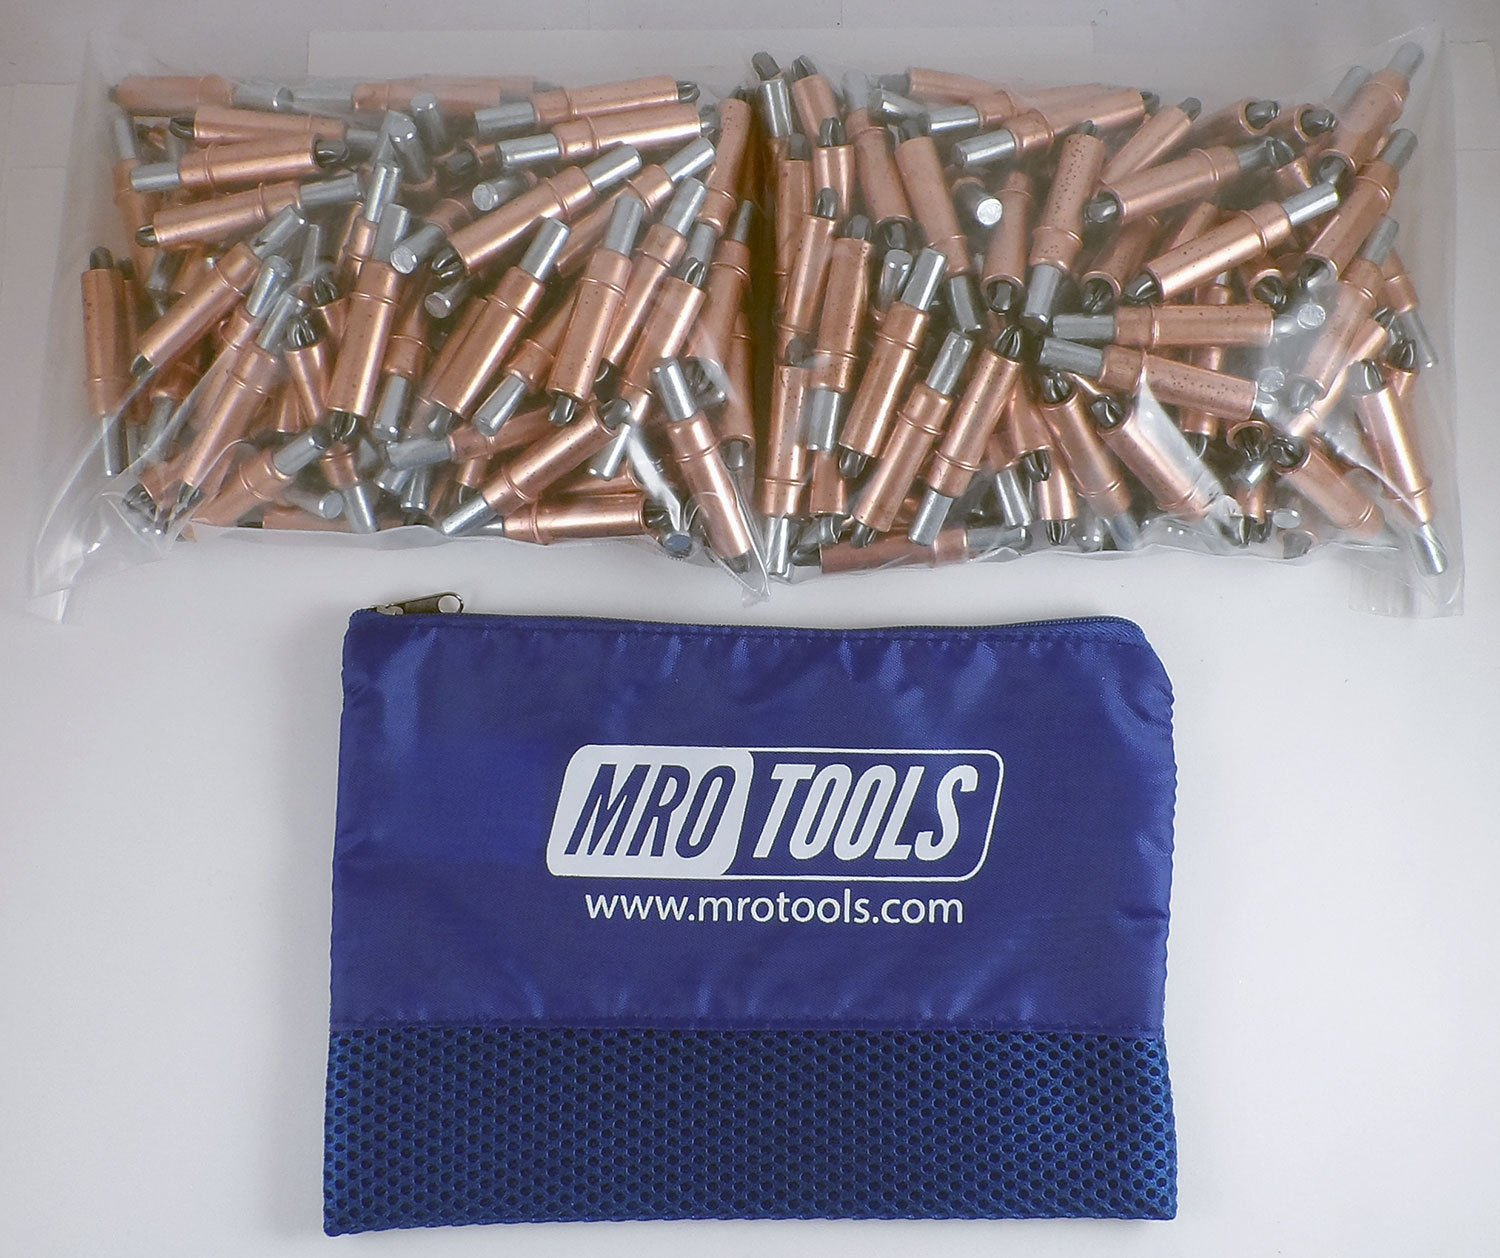 250 1/4 Cleco Sheet Metal Fasteners w/ Mesh Carry Bag (K2S250-1/4) by MRO Tools Cleco Fasteners